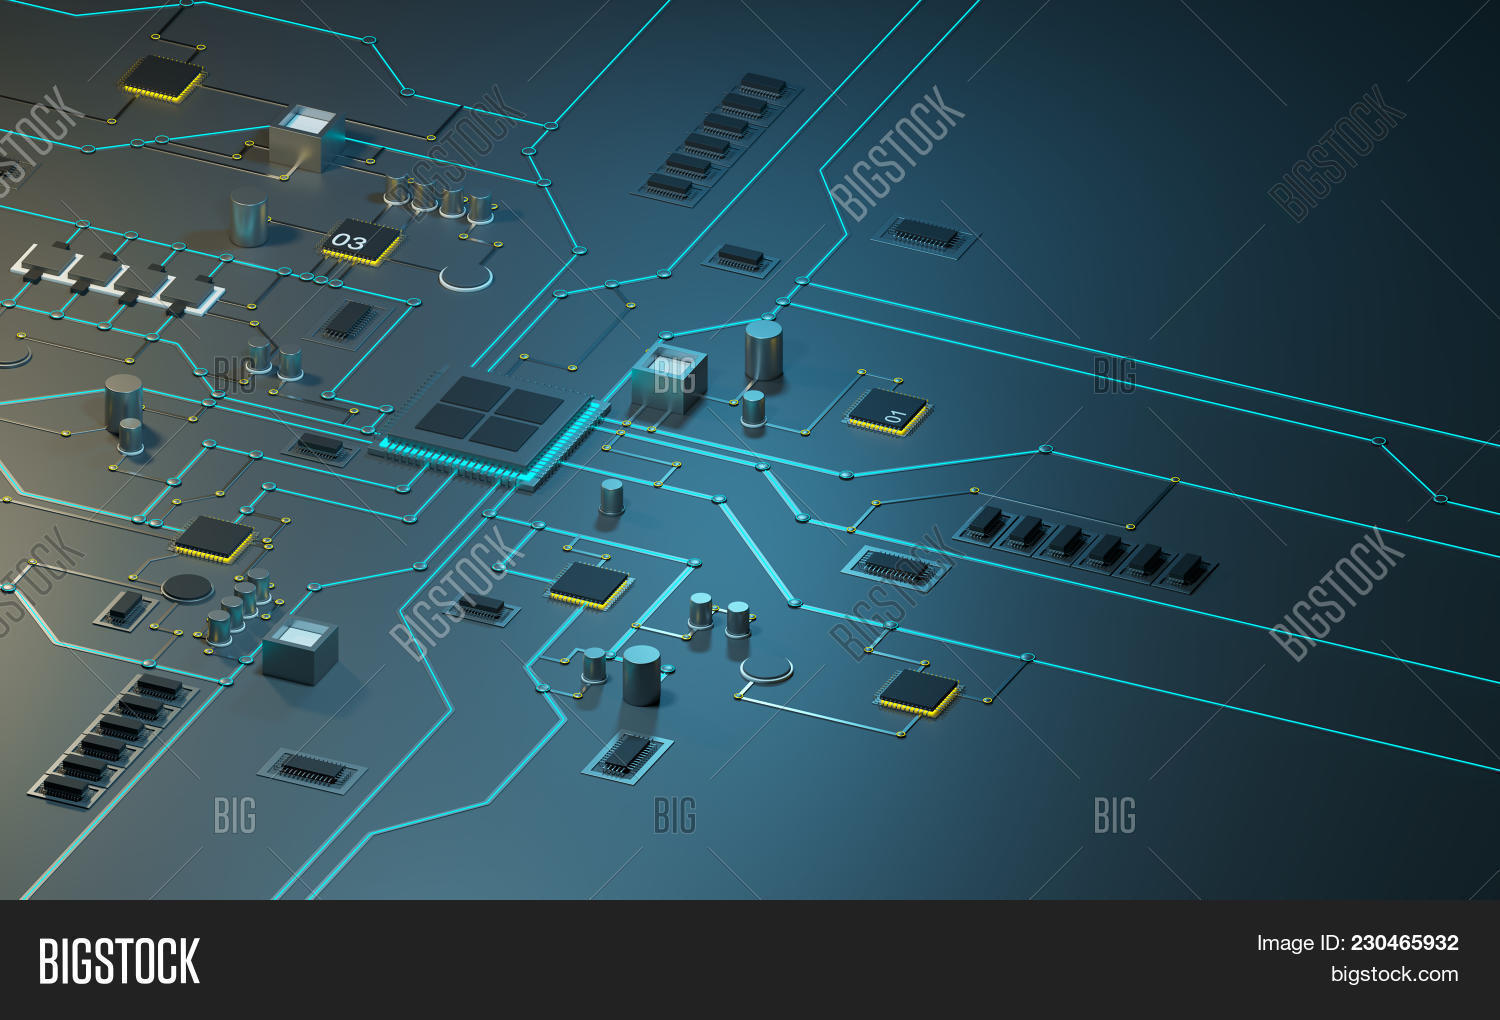 High Tech Electronic Image Photo Free Trial Bigstock Stockfoto Printed Circuit Board Pcb Used In Industrial With Processor Microchips And Glowing Digital Electr